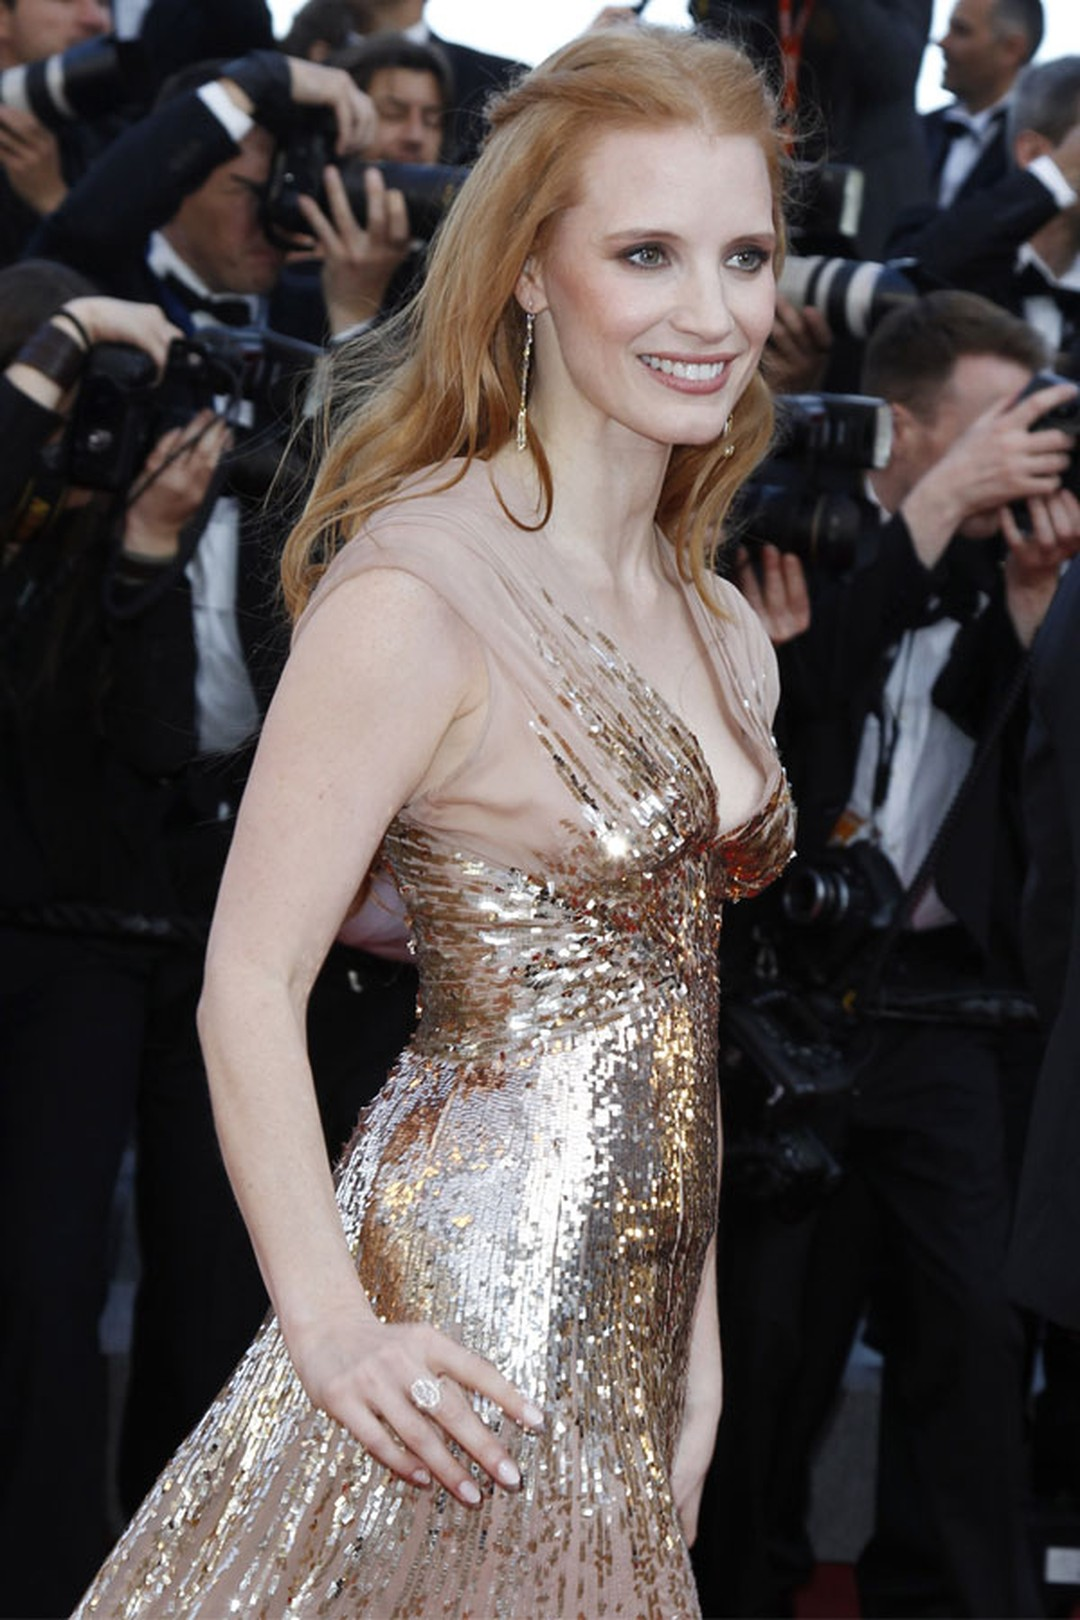 Jessica_Chastain_in_Chopard_04.jpg